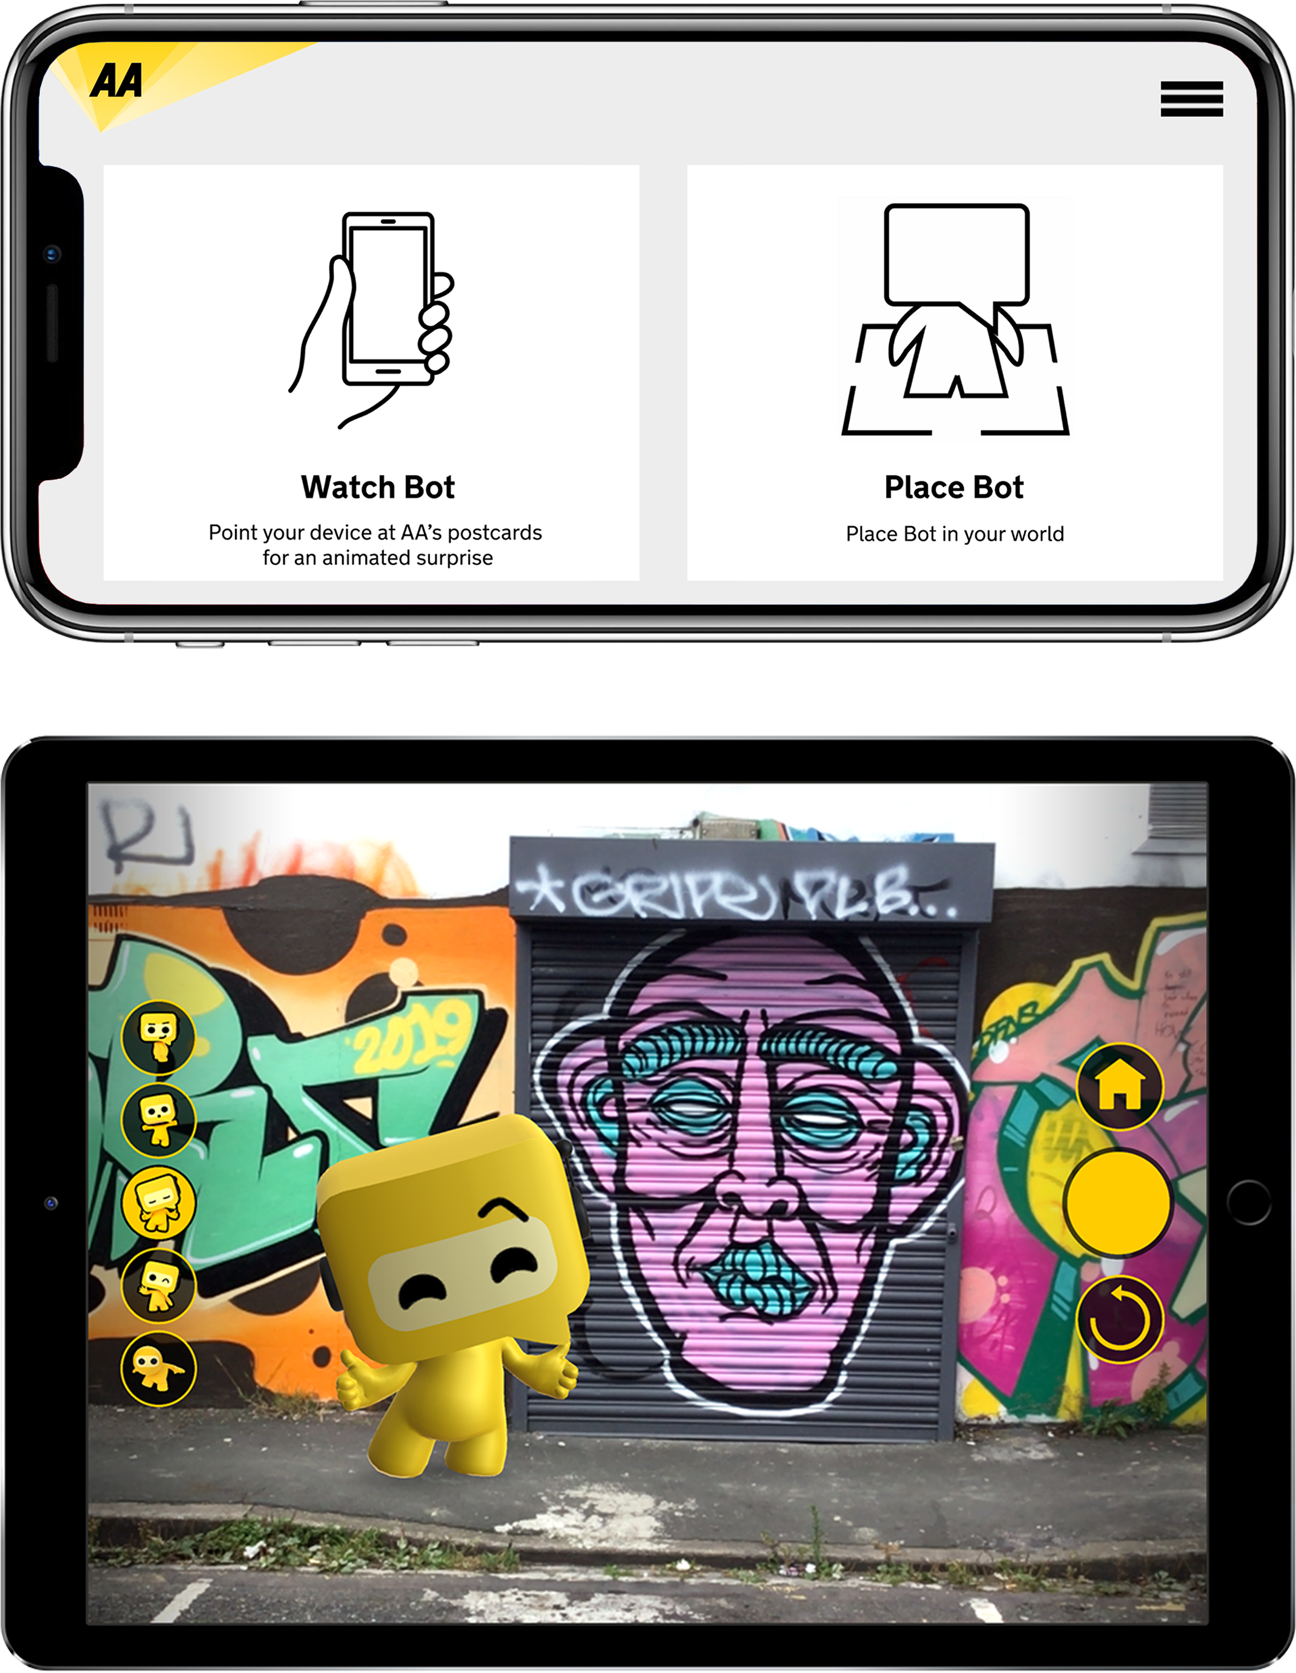 User interface elements of the AR app on phone and tablet devices